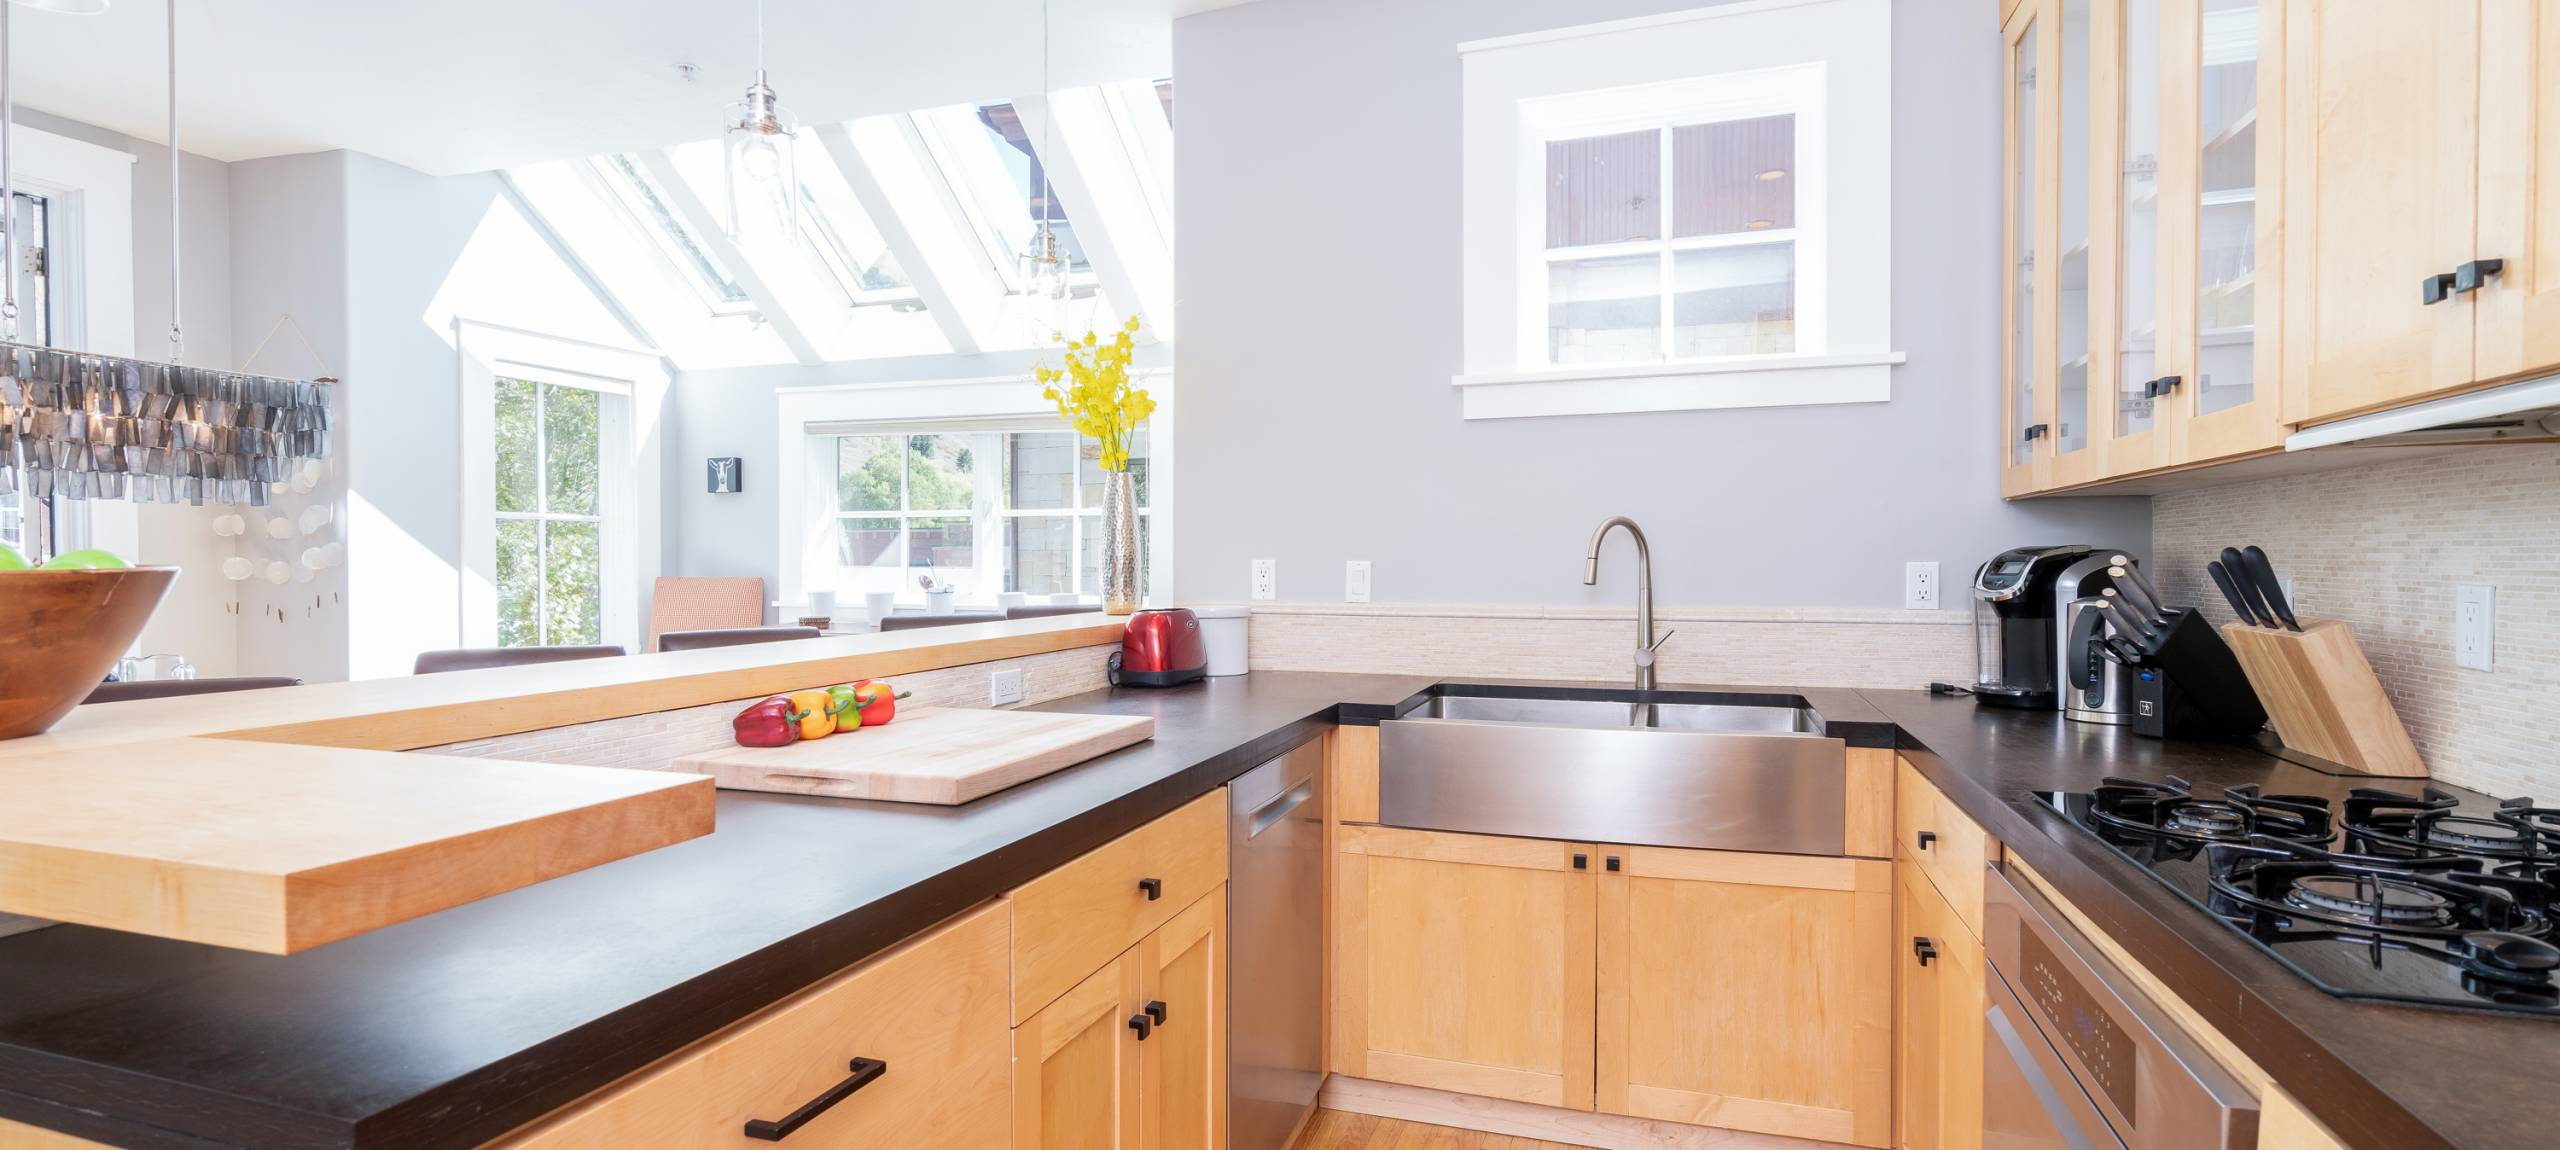 telluride-pacific-place-kitchen